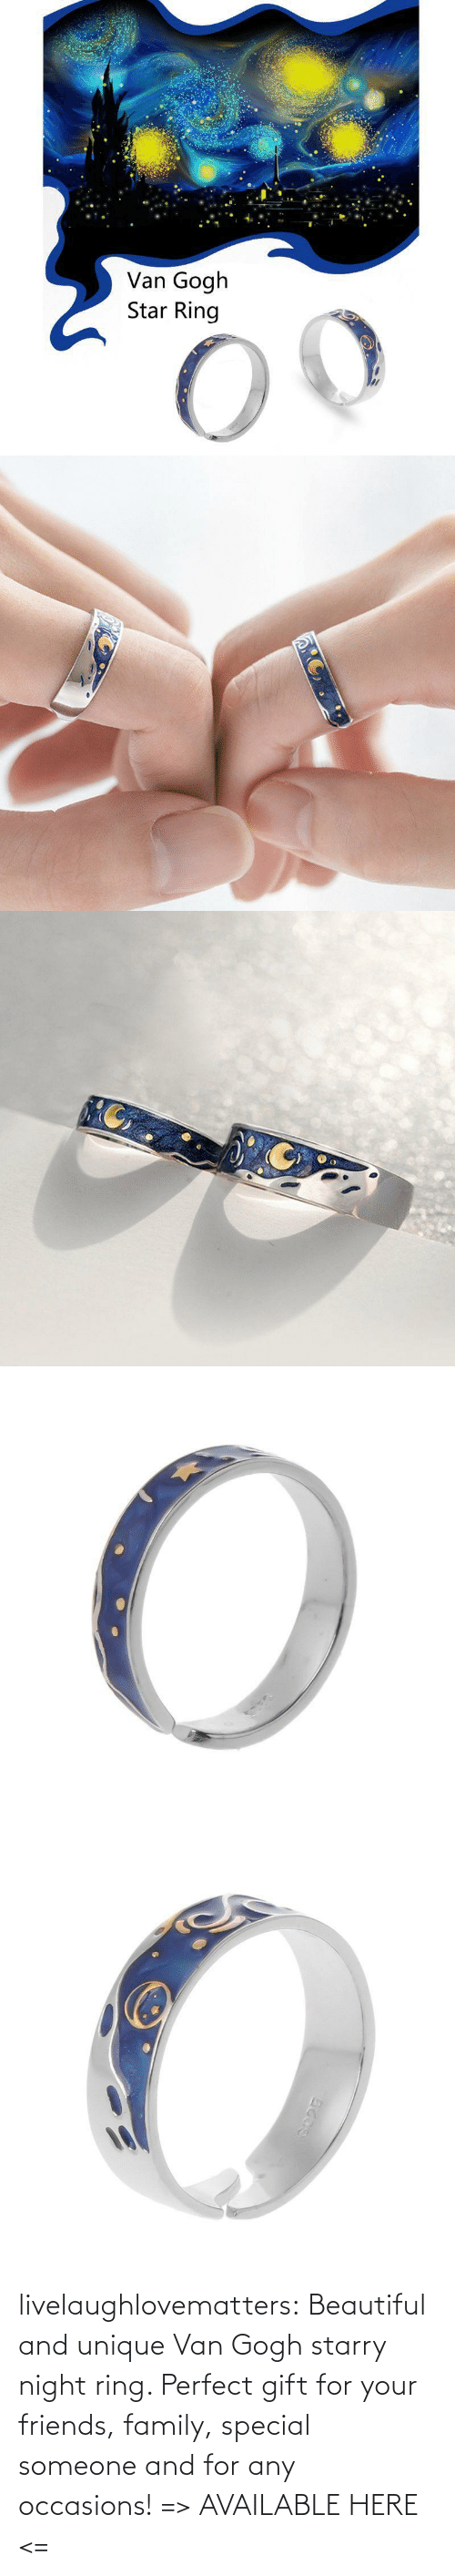 sky: livelaughlovematters: Beautiful and unique Van Gogh starry night ring. Perfect gift for your friends, family, special someone and for any occasions! => AVAILABLE HERE <=